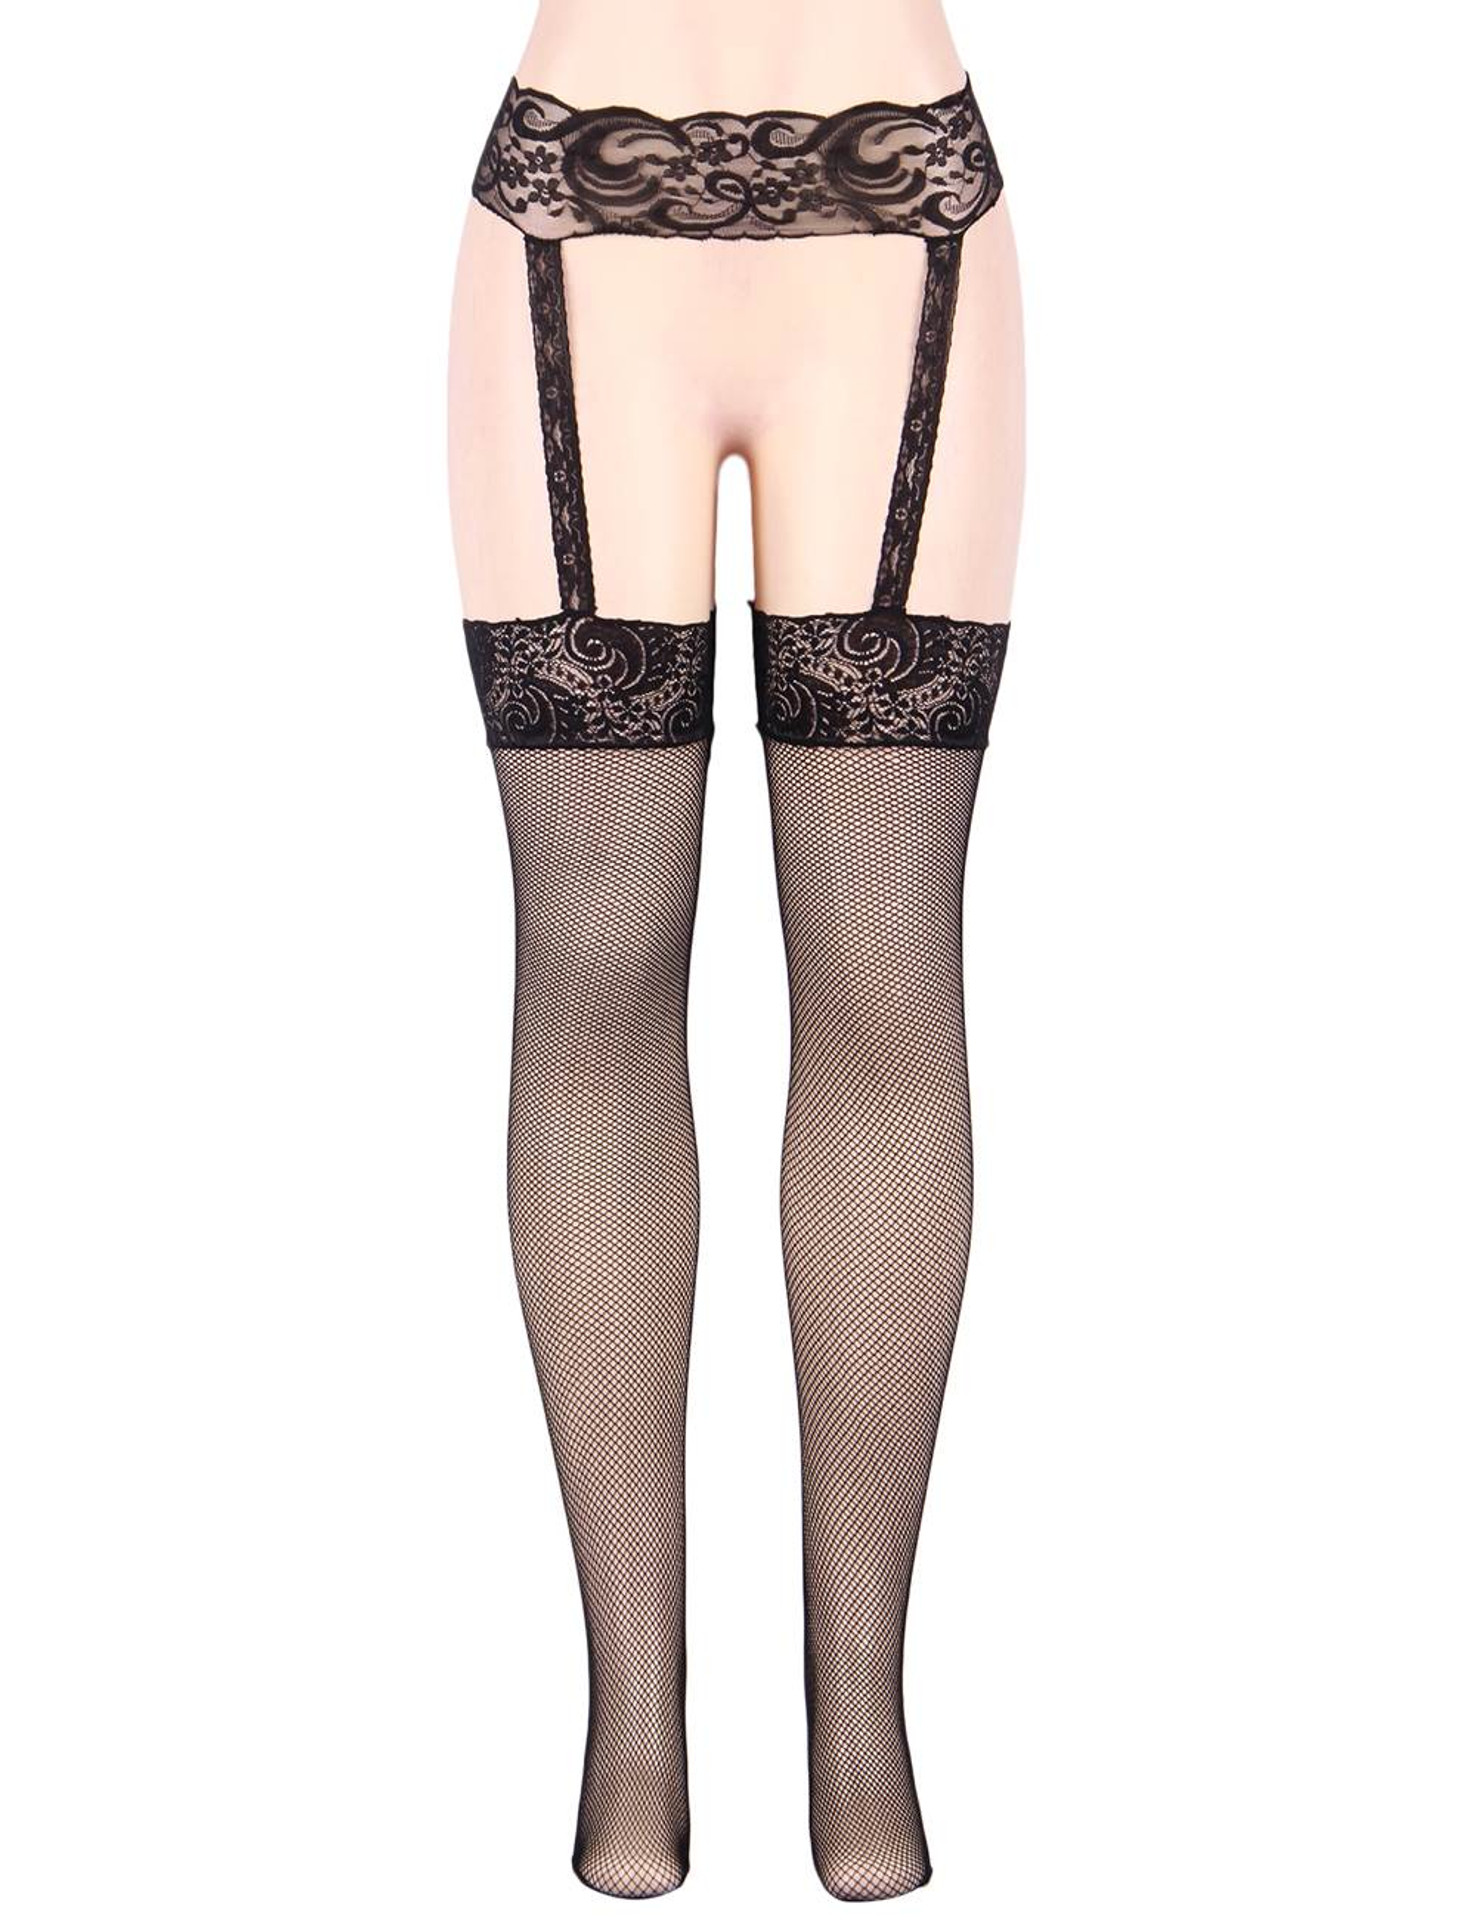 Black Lace Garter Belt with attached Lace Top Fishnet Garter Hose Stockings